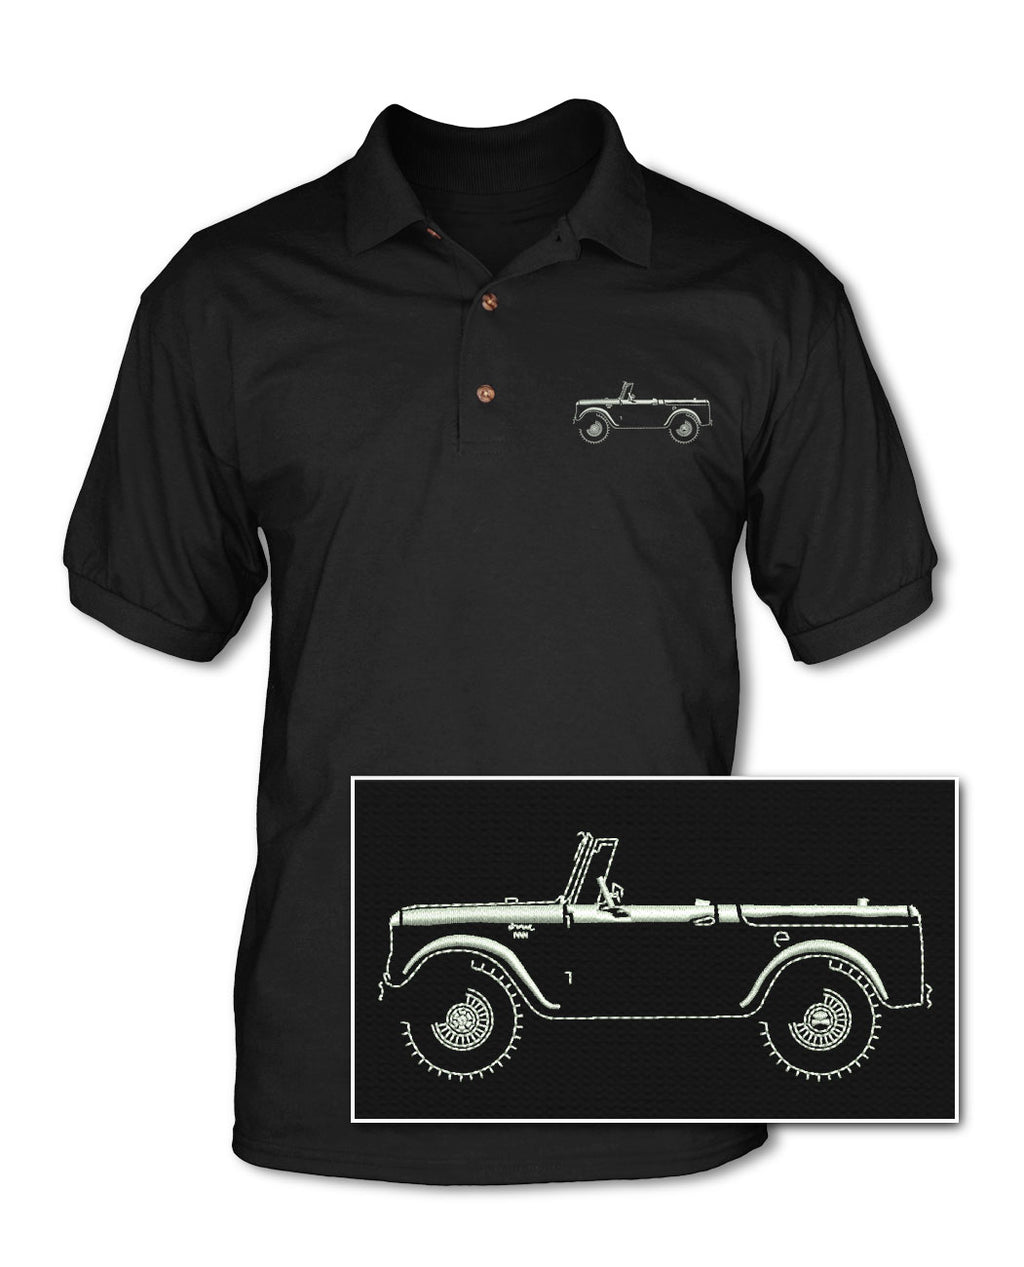 1960 - 1965 International Scout I Adult Pique Polo Shirt - Side View